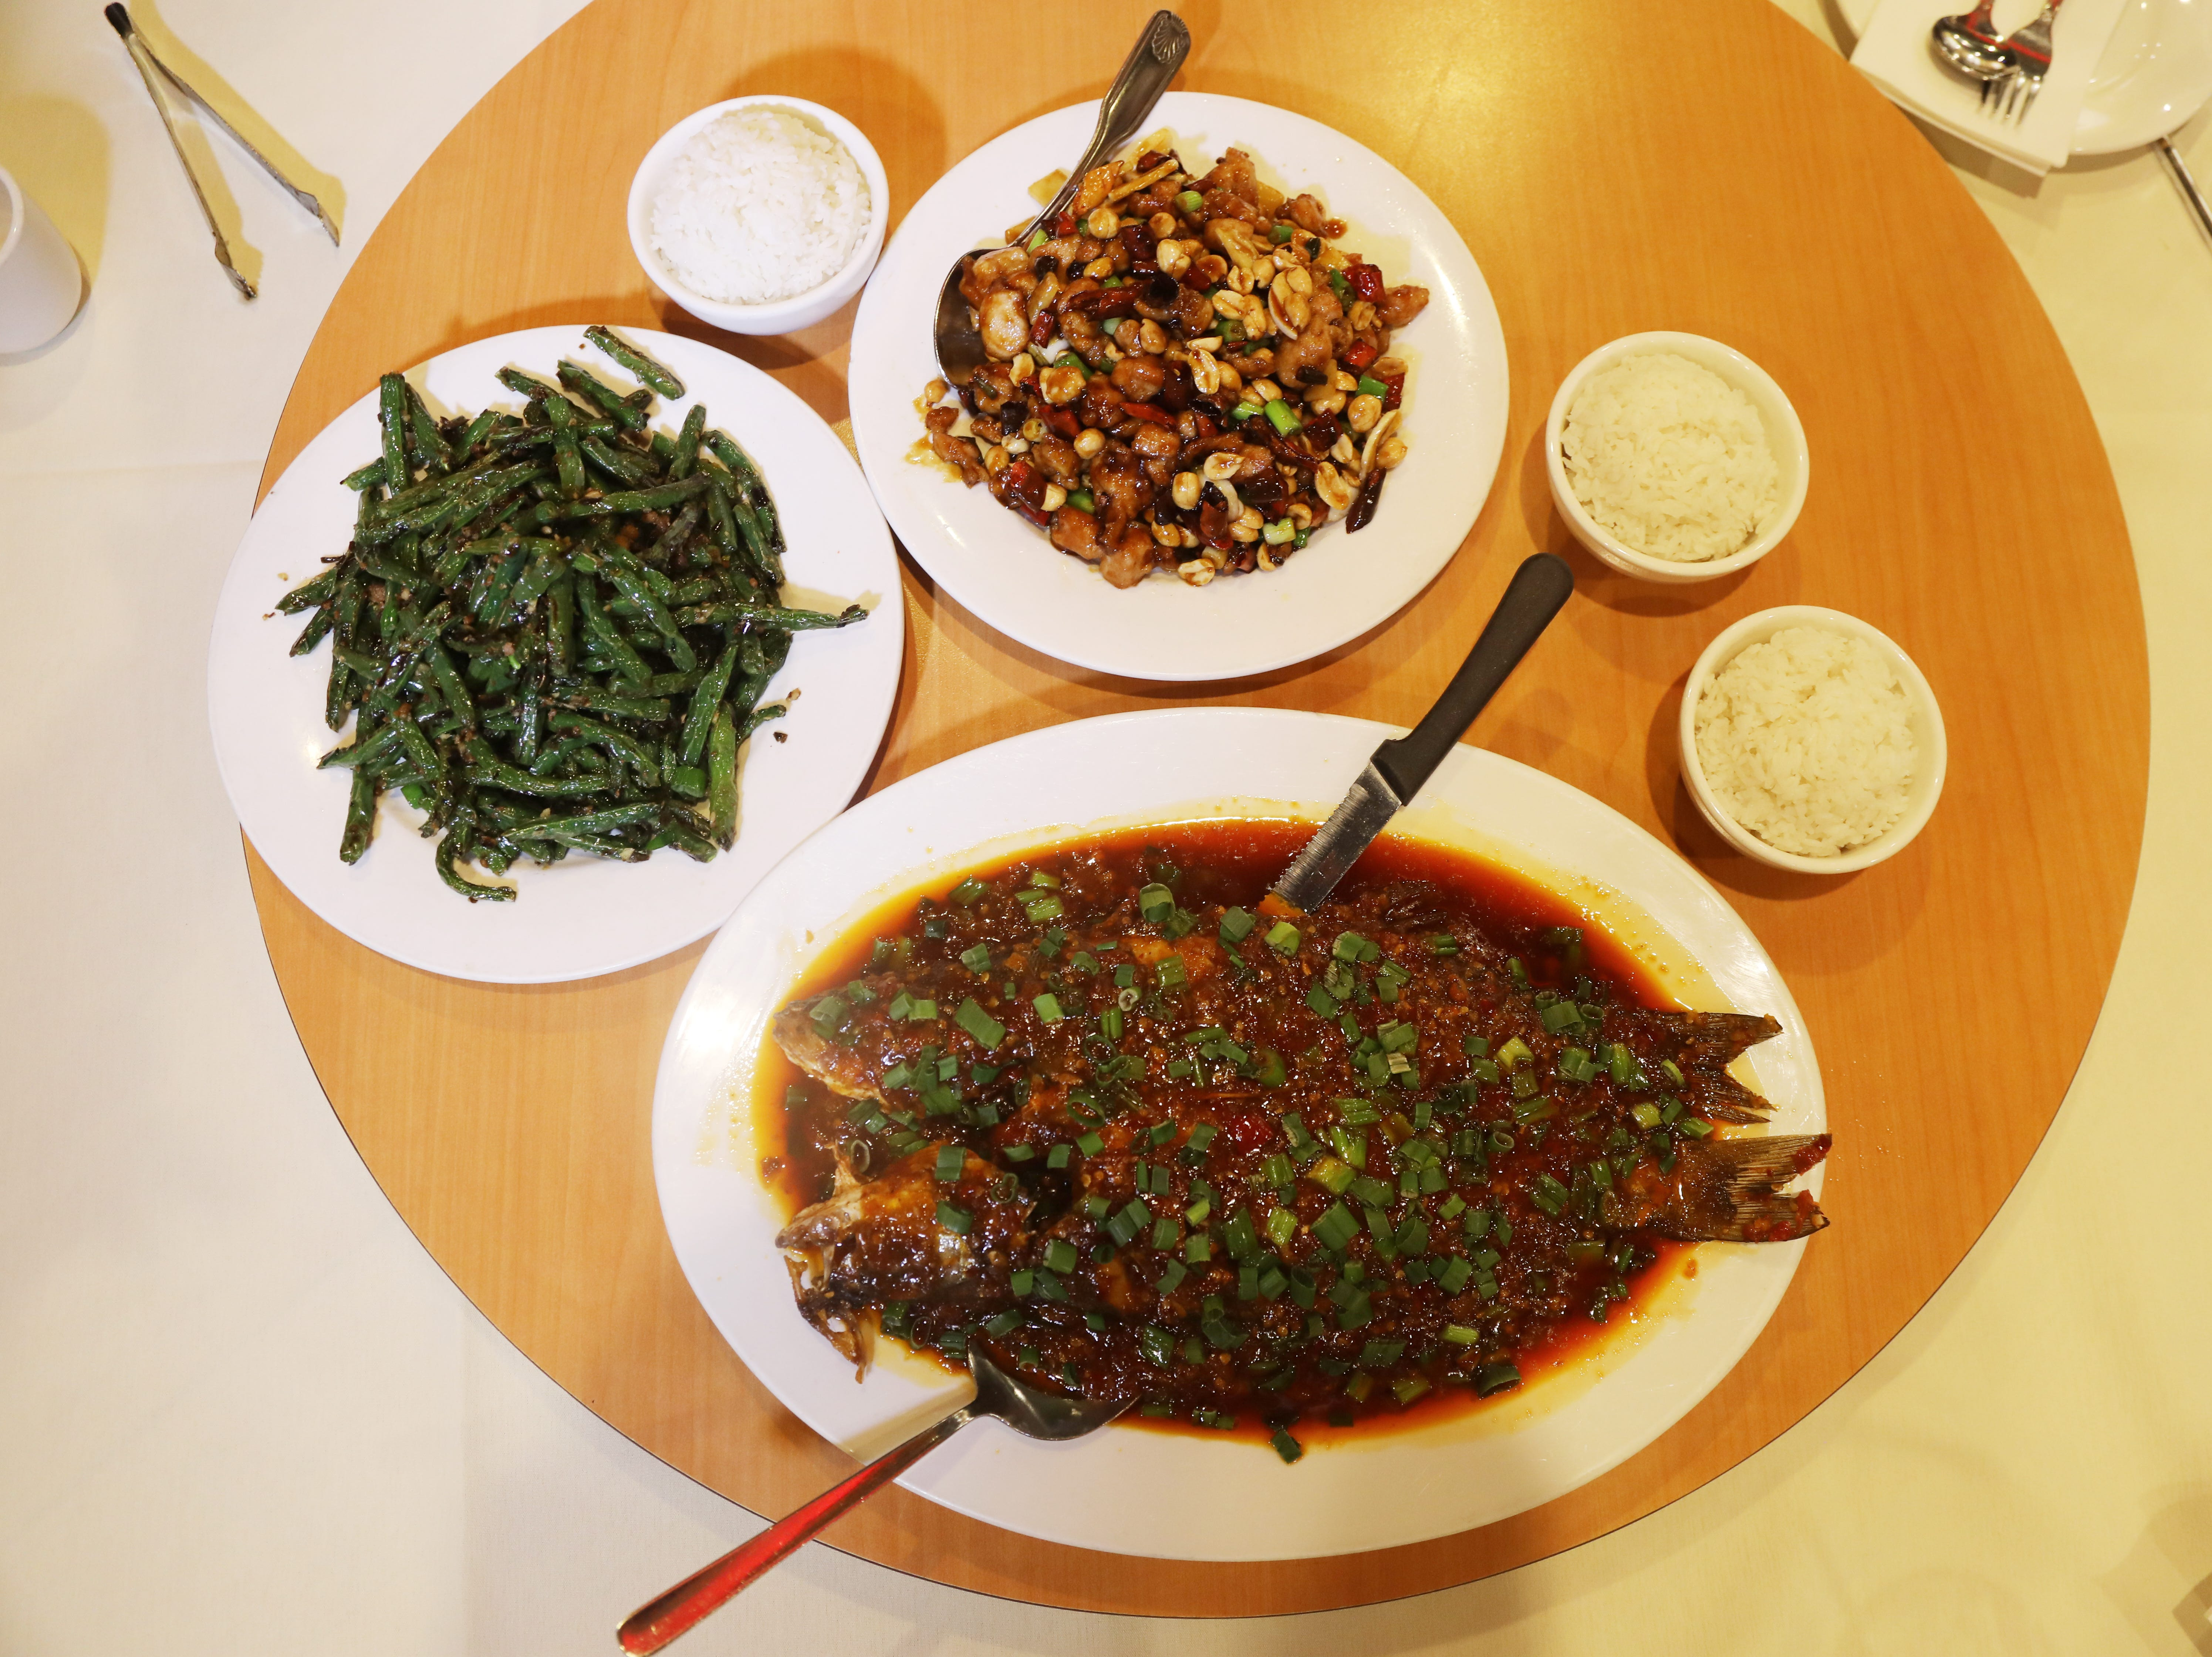 Asparagus, Kung Pao chicken and whole fish with Cheng Du hot bean paste and chili sauce at Cheng Du 23 in Wayne.